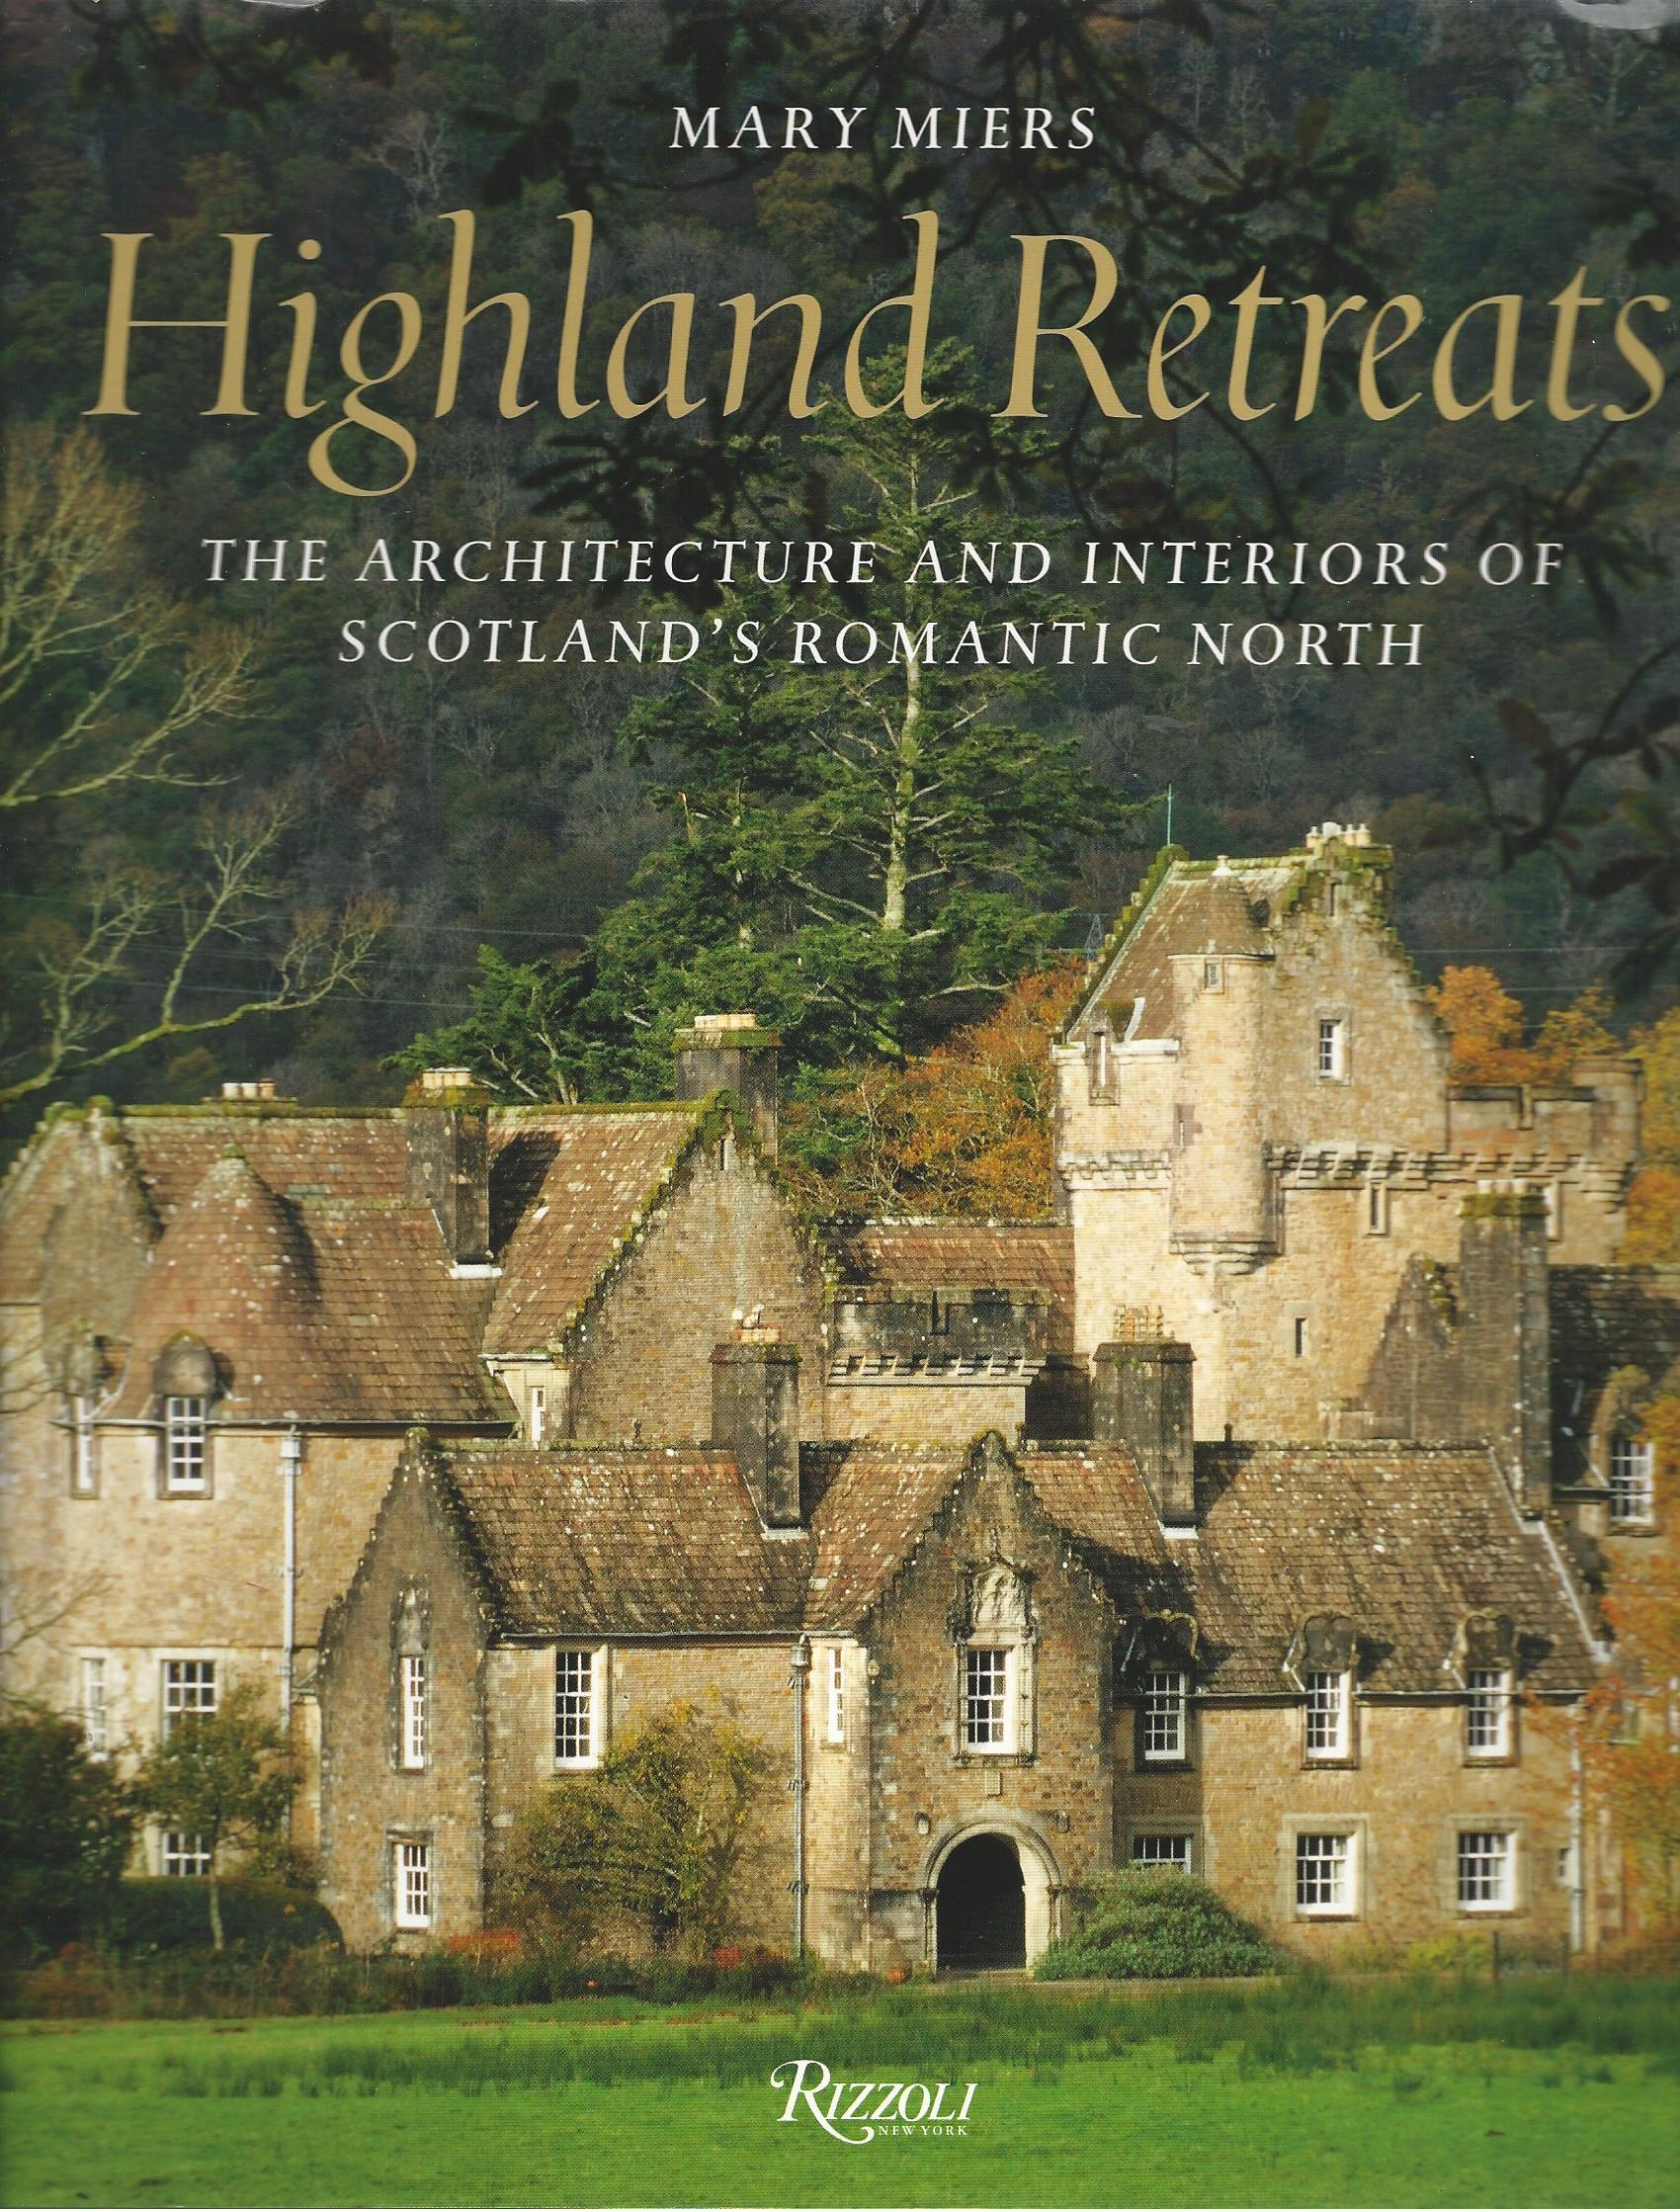 Image for Highland Retreats: The Architecture and Interiors of Scotland's Romantic North